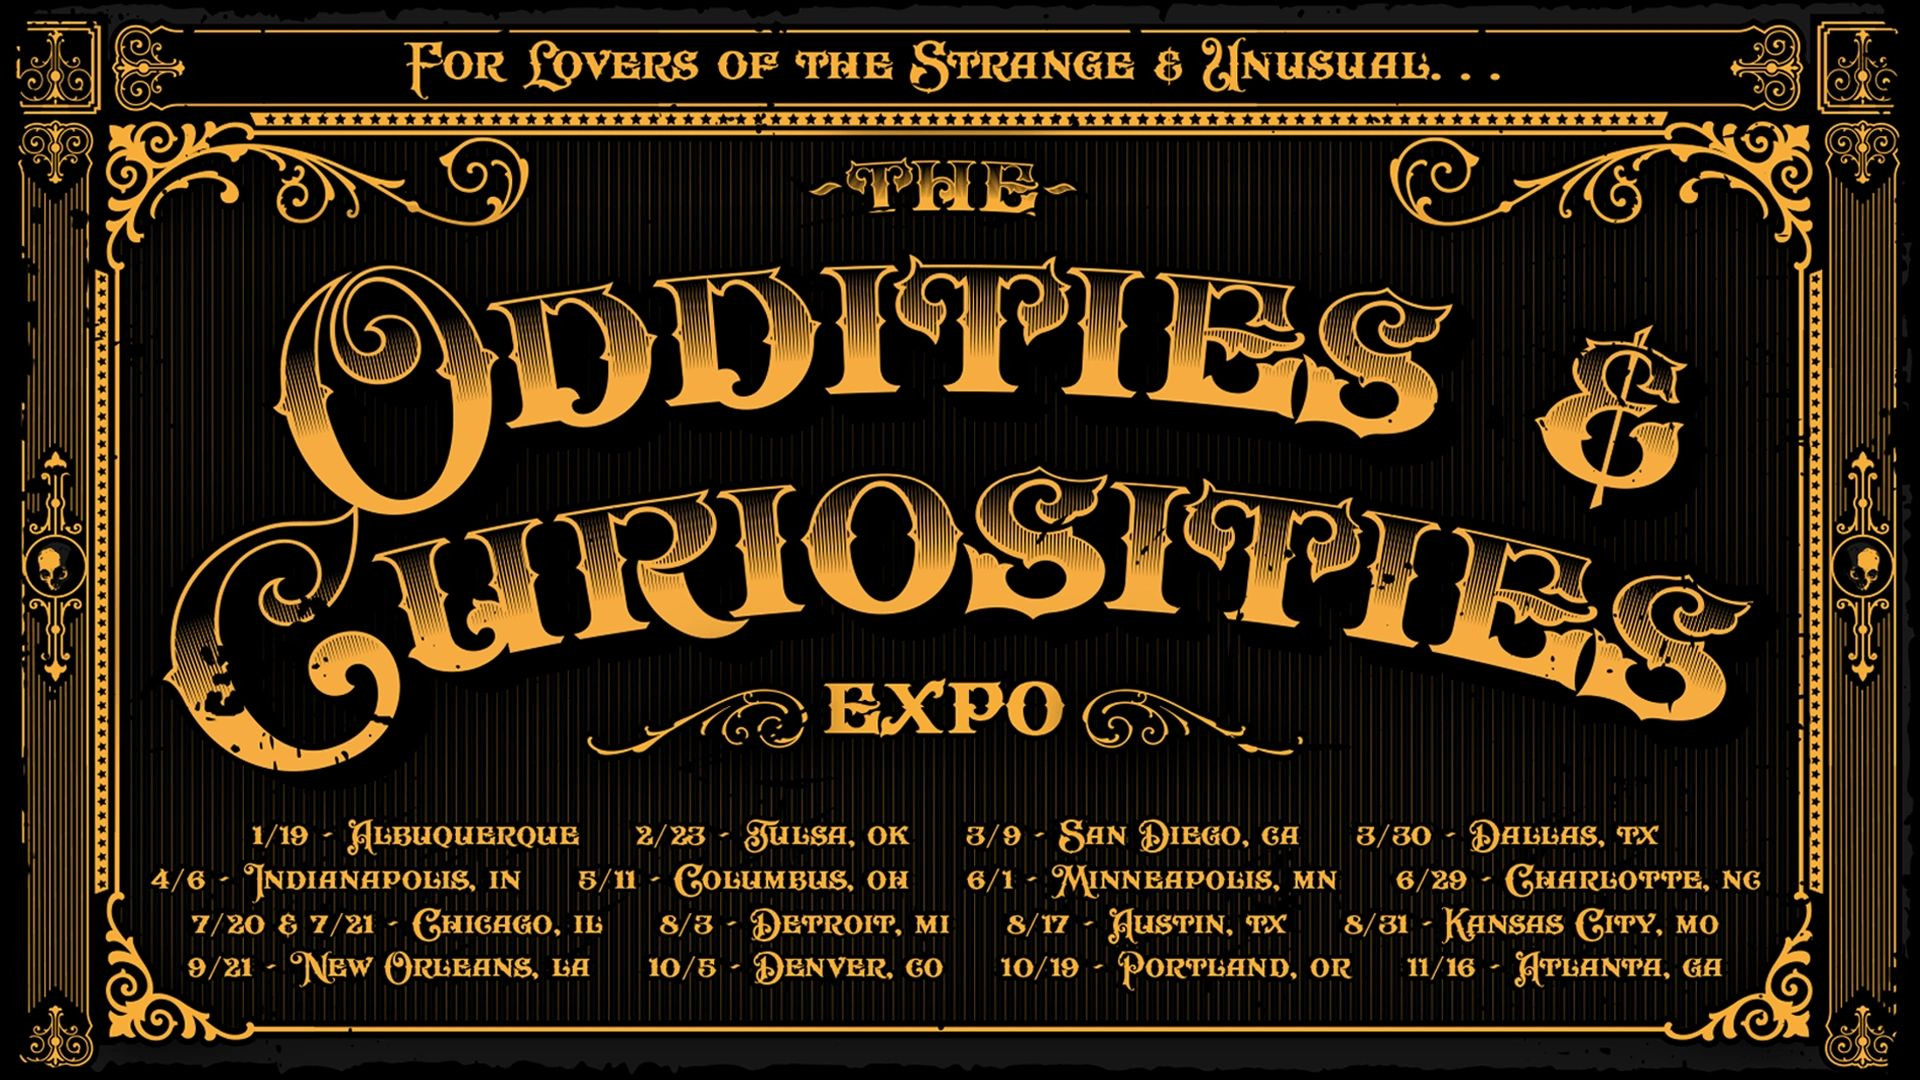 Oddities & Curiosities Expo